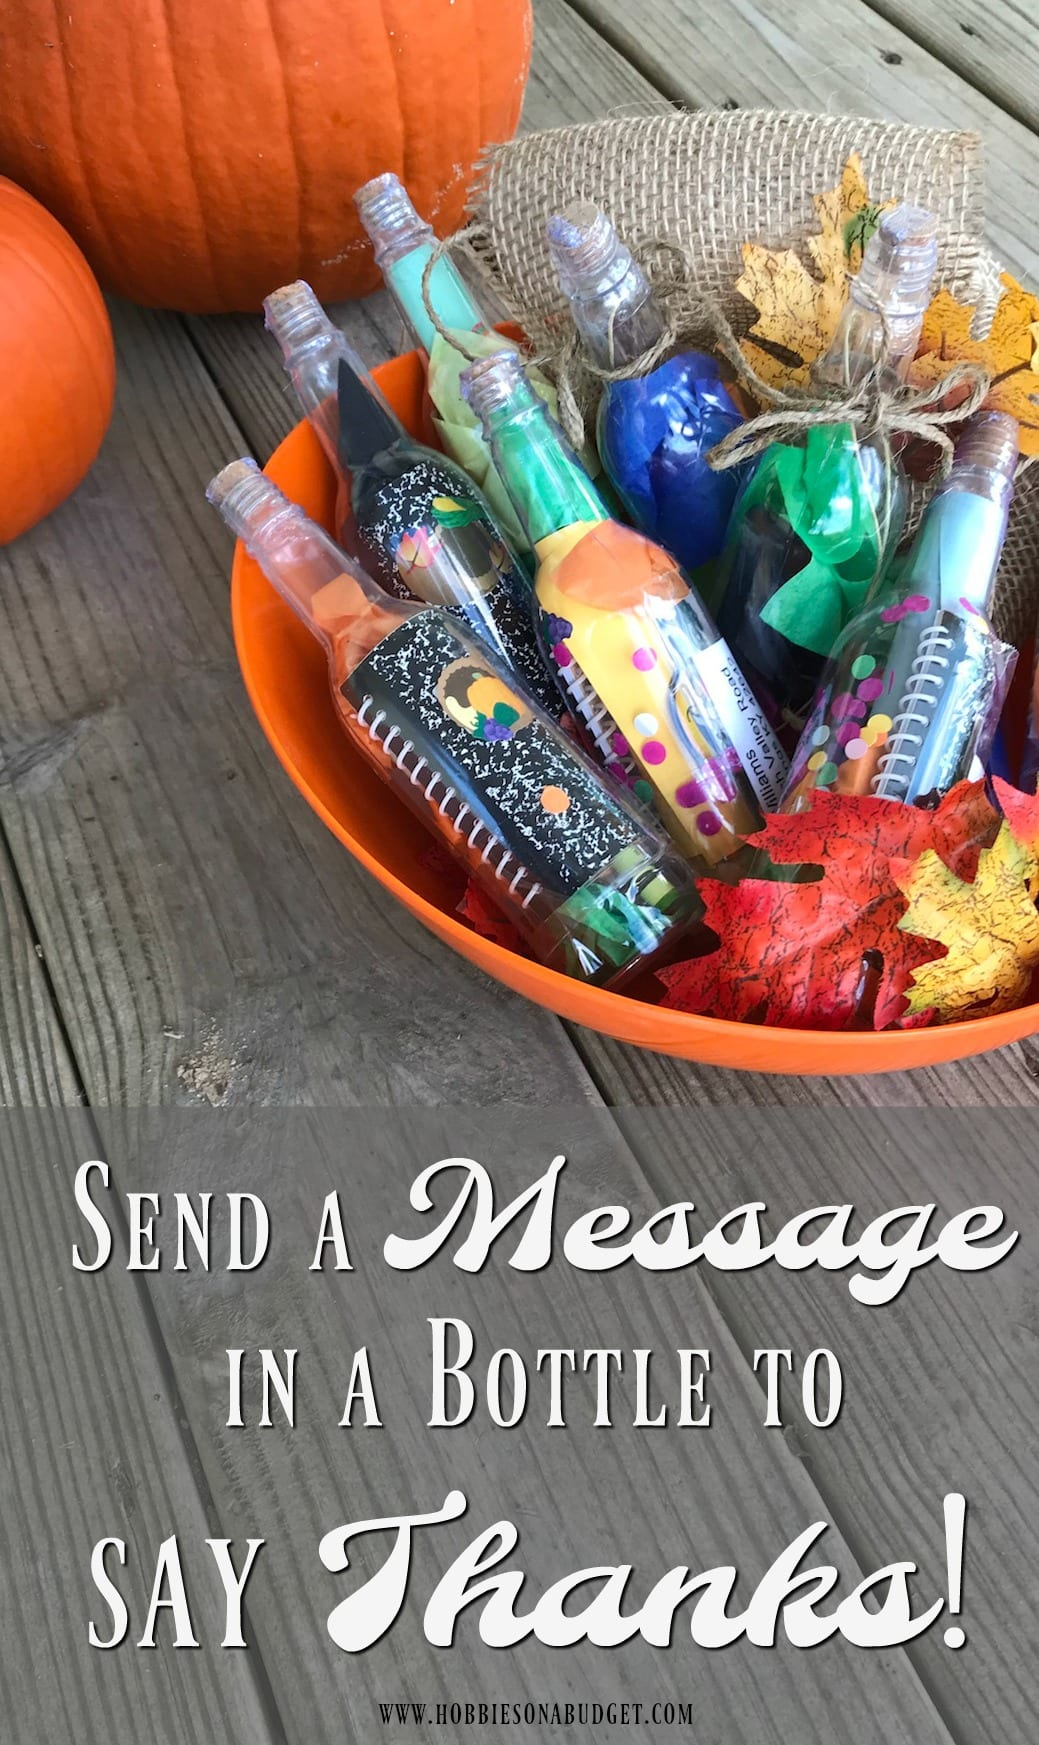 Send a message in a bottle to say thanks